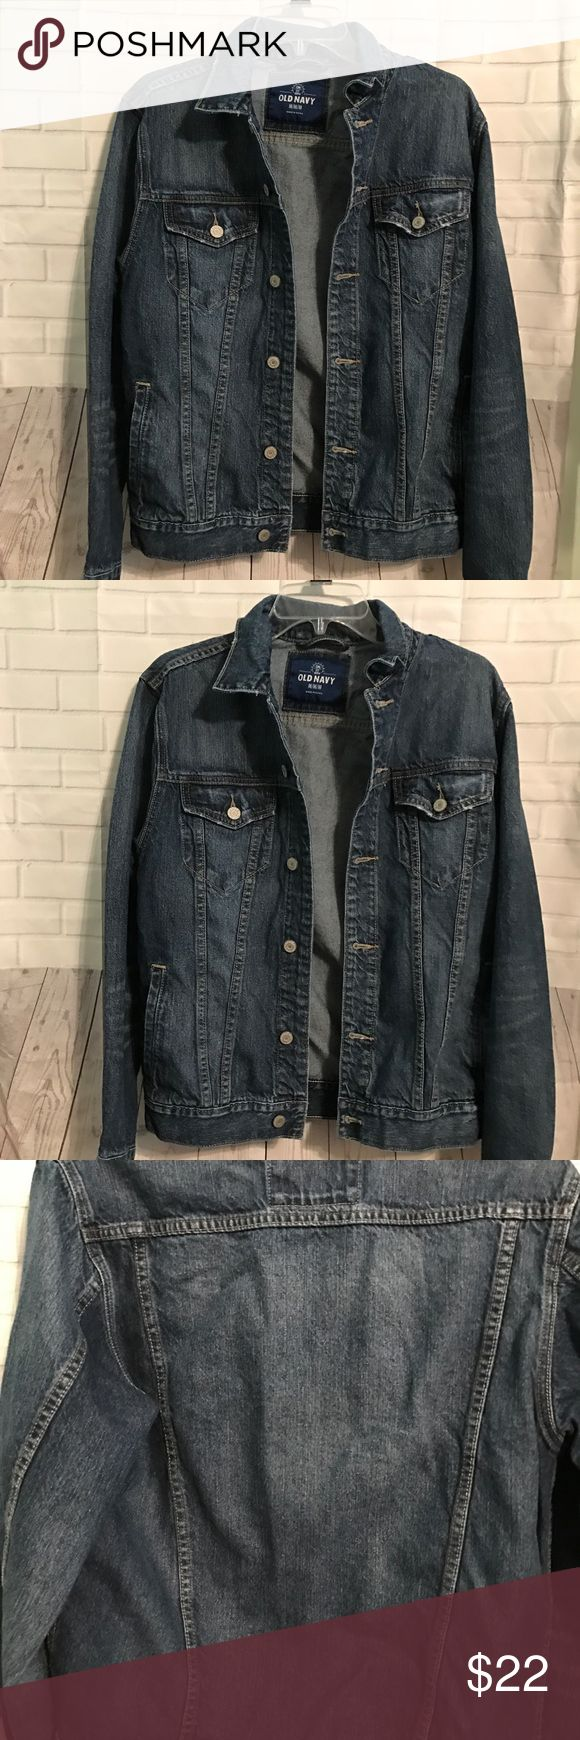 Old Navy Women Jean Jacket This is a cute button up Jean Jacket with pockets Old Navy Jackets & Coats Jean Jackets